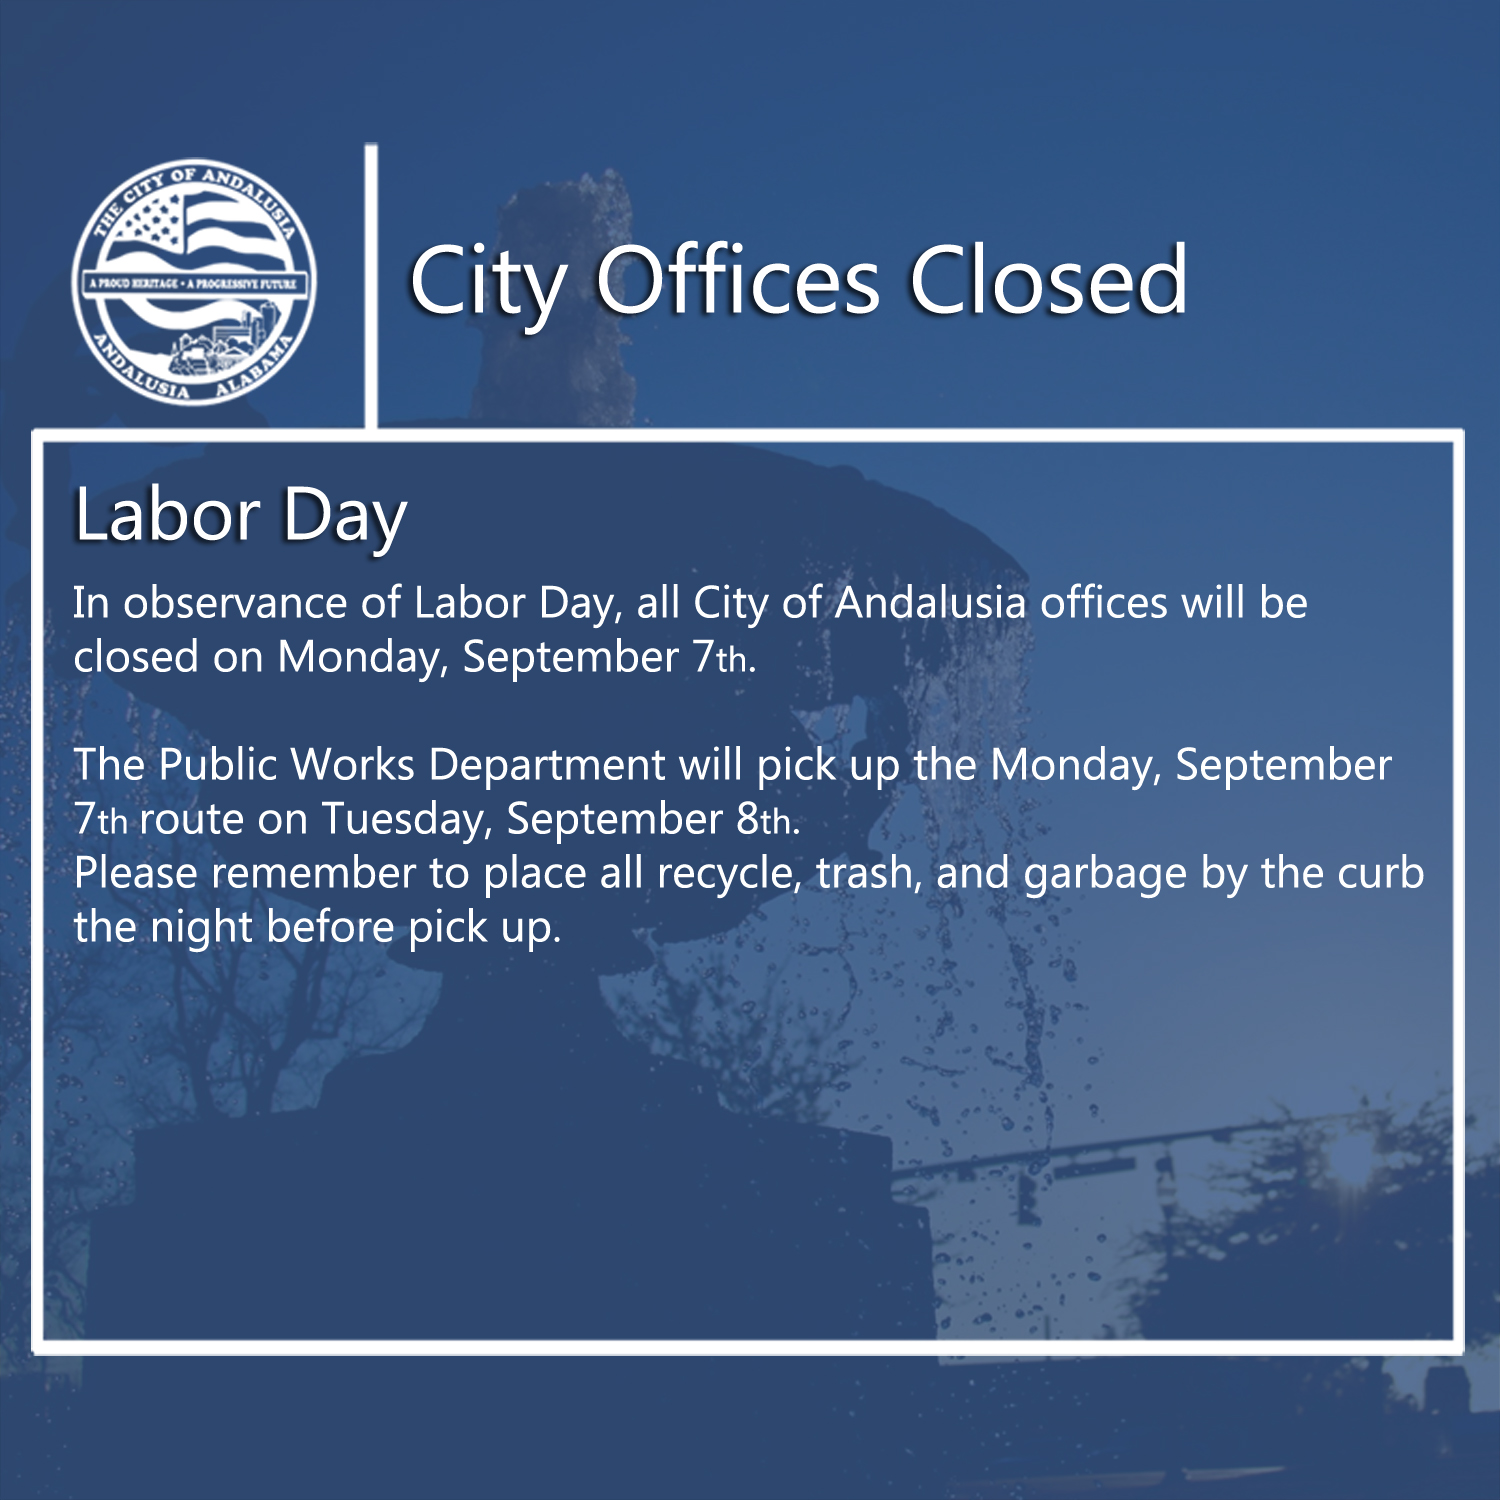 Facebook City Offices Closed Sept. 7th